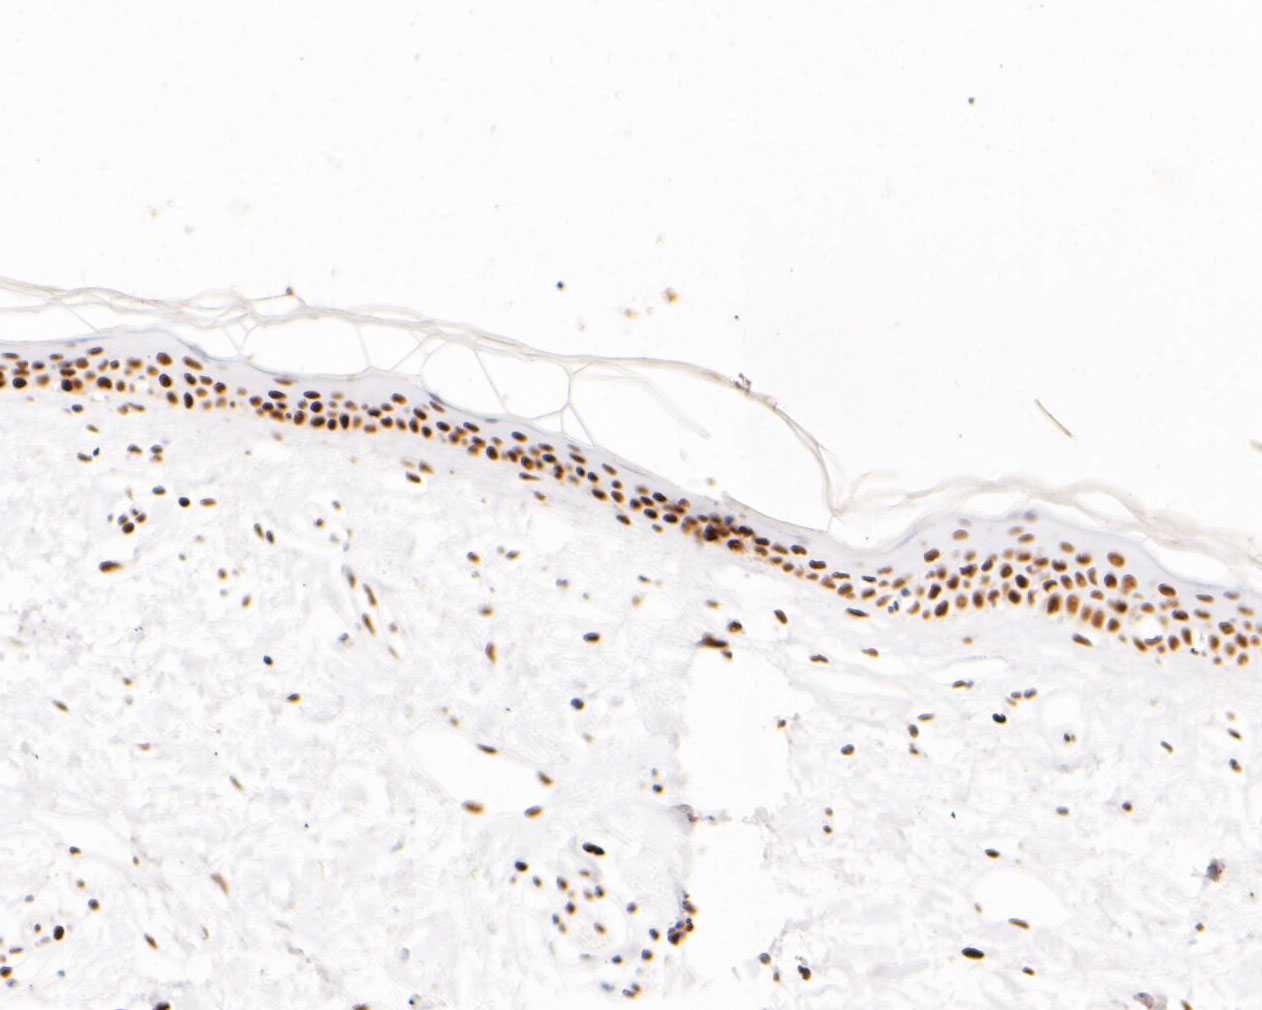 Immunohistochemical analysis of paraffin-embedded human skin tissue using anti-MSH6 antibody. The section was pre-treated using heat mediated antigen retrieval with sodium citrate buffer (pH 6.0) for 20 minutes. The tissues were blocked in 5% BSA for 30 minutes at room temperature, washed with ddH2O and PBS, and then probed with the primary antibody (EM1902-24, 1/200)  for 30 minutes at room temperature. The detection was performed using an HRP conjugated compact polymer system. DAB was used as the chromogen. Tissues were counterstained with hematoxylin and mounted with DPX.